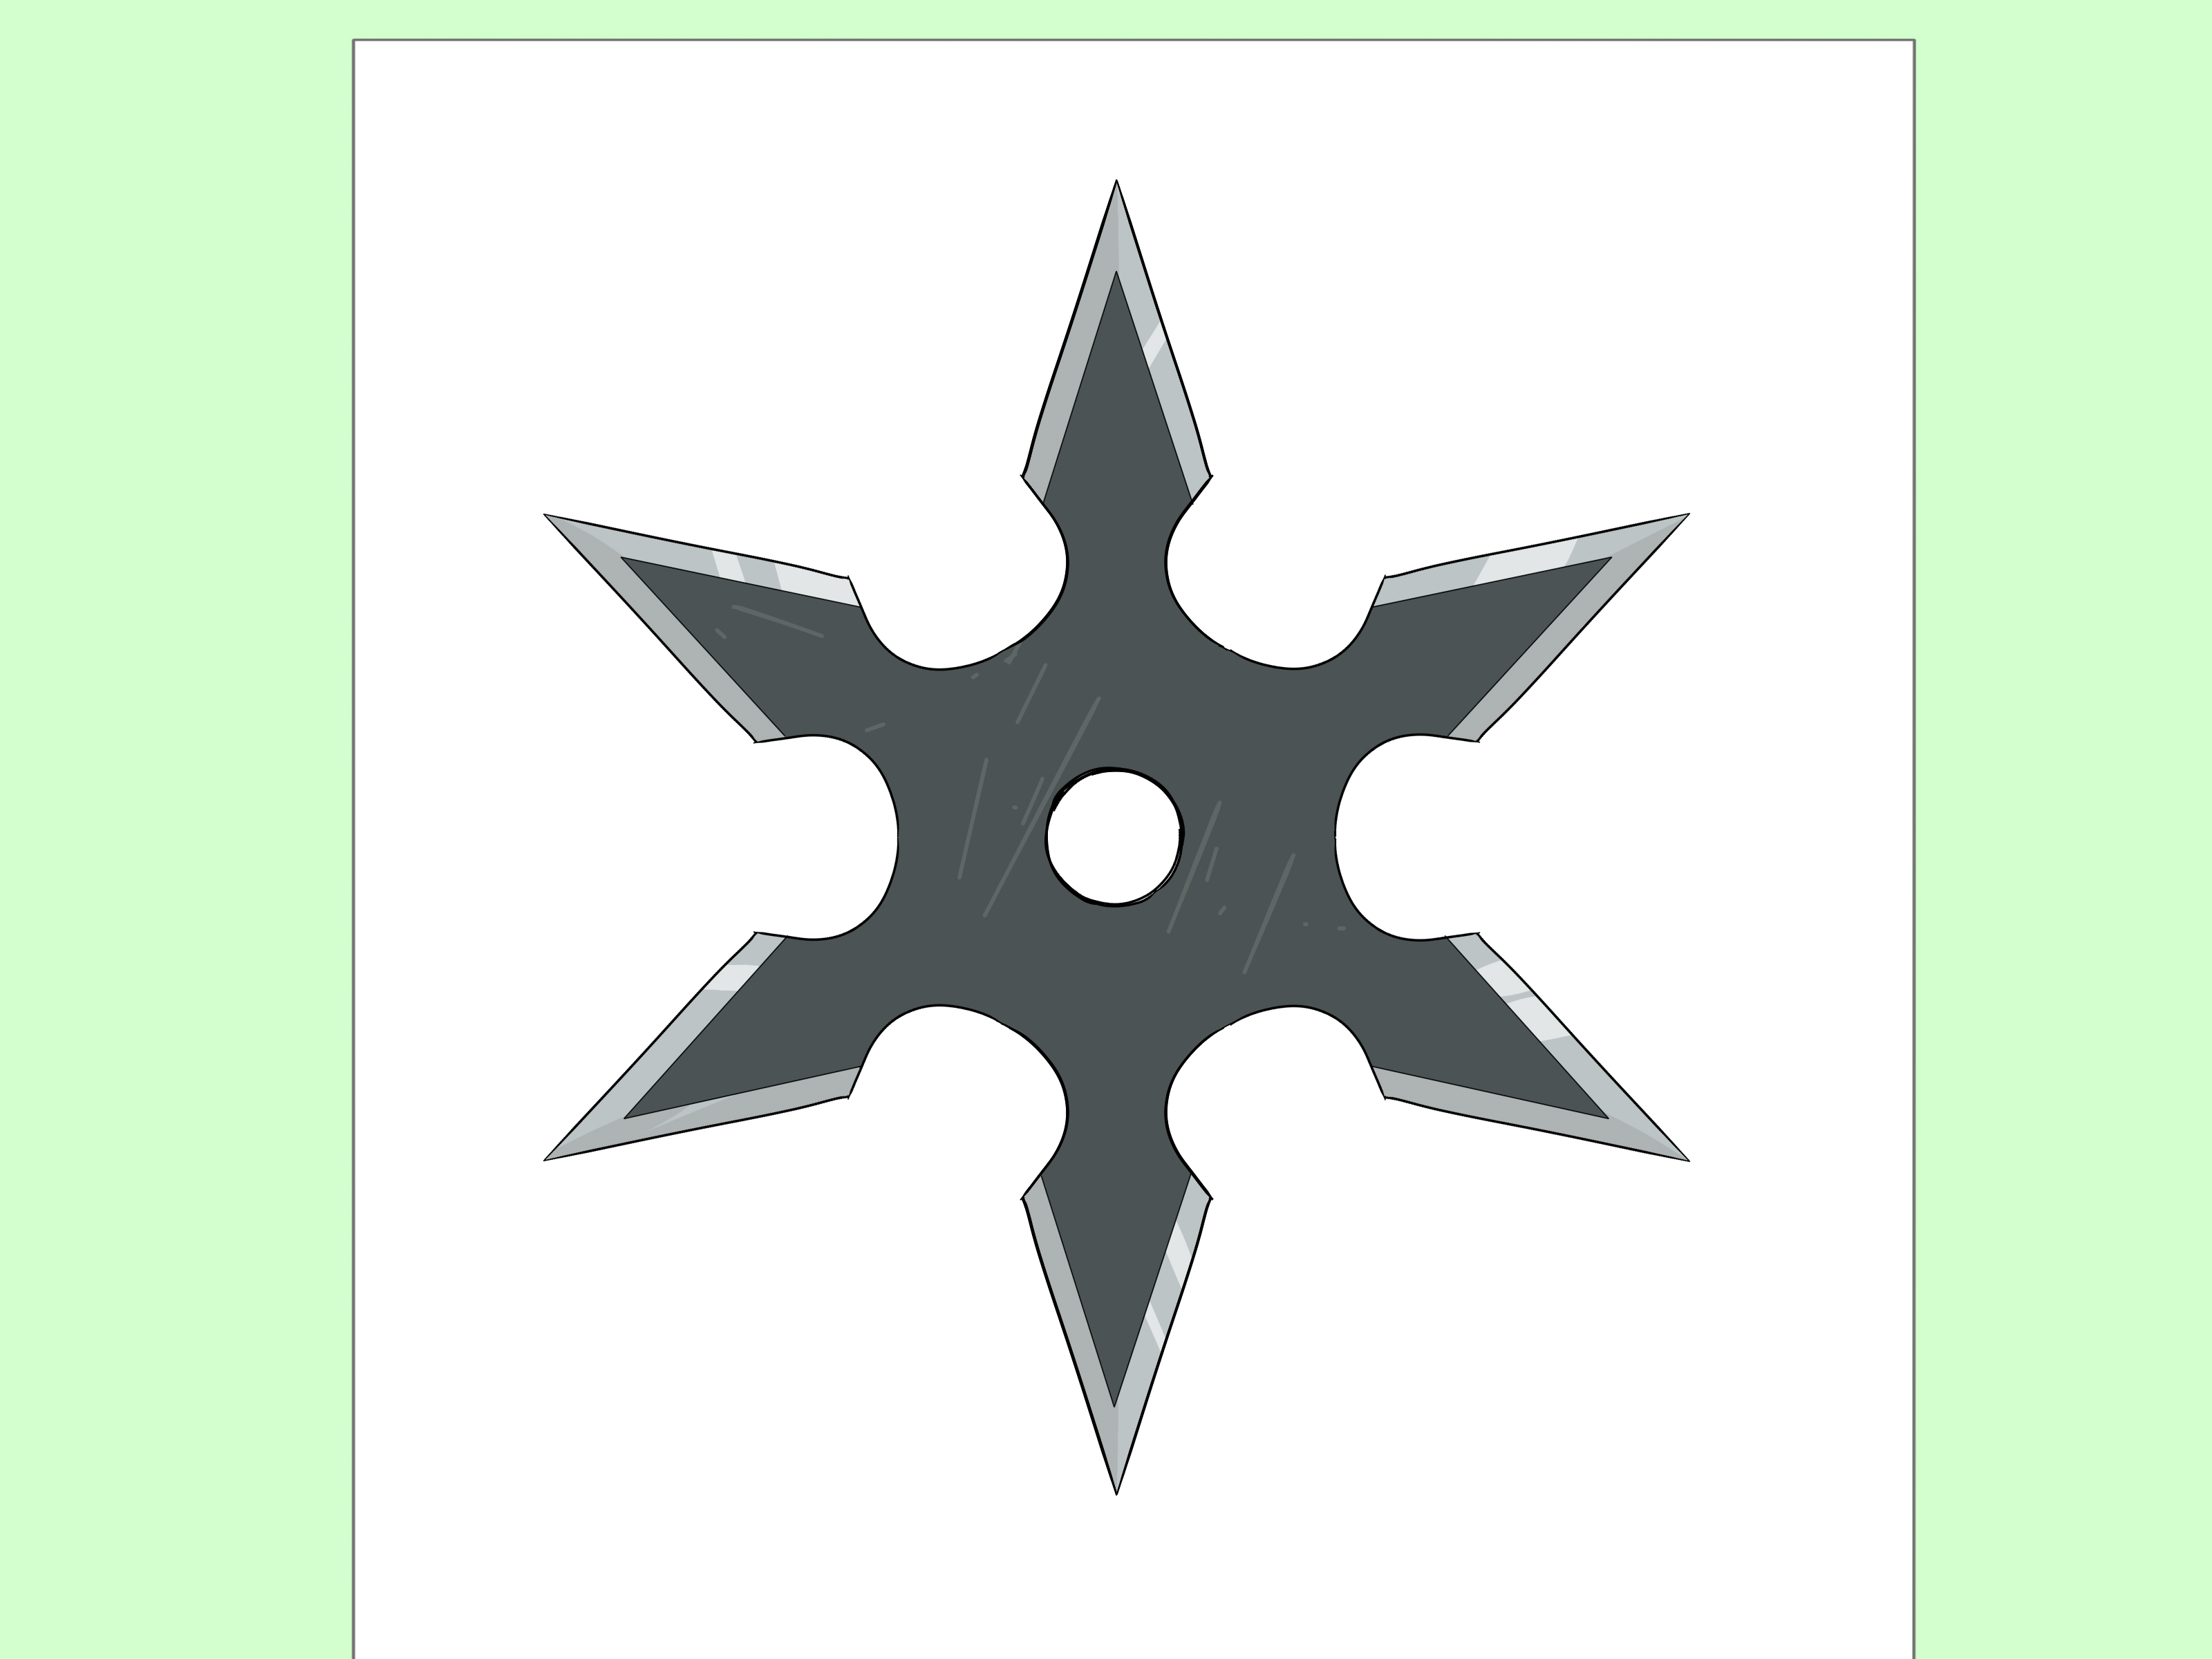 3200x2400 How To Draw A Ninja Star 14 Steps (With Pictures)